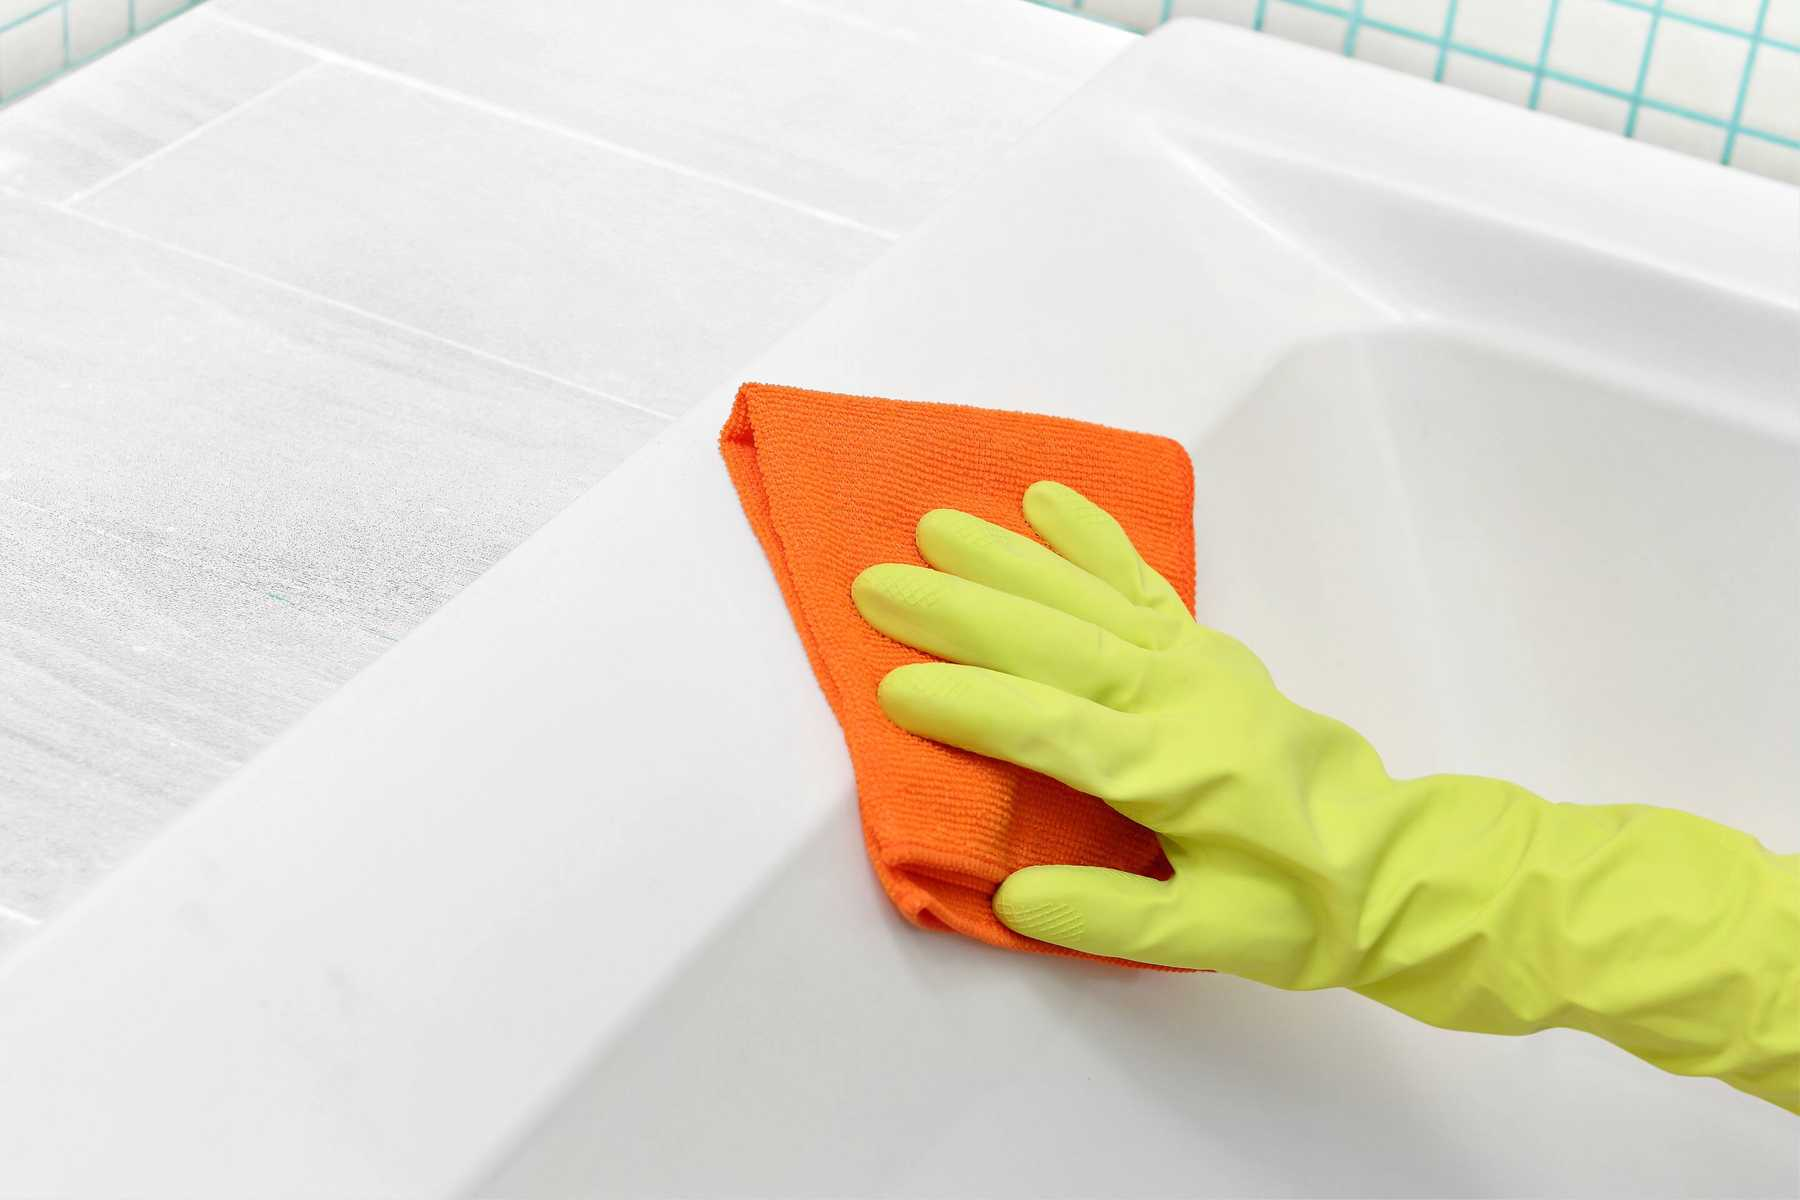 remove-stubborn-stains-from-bathtub